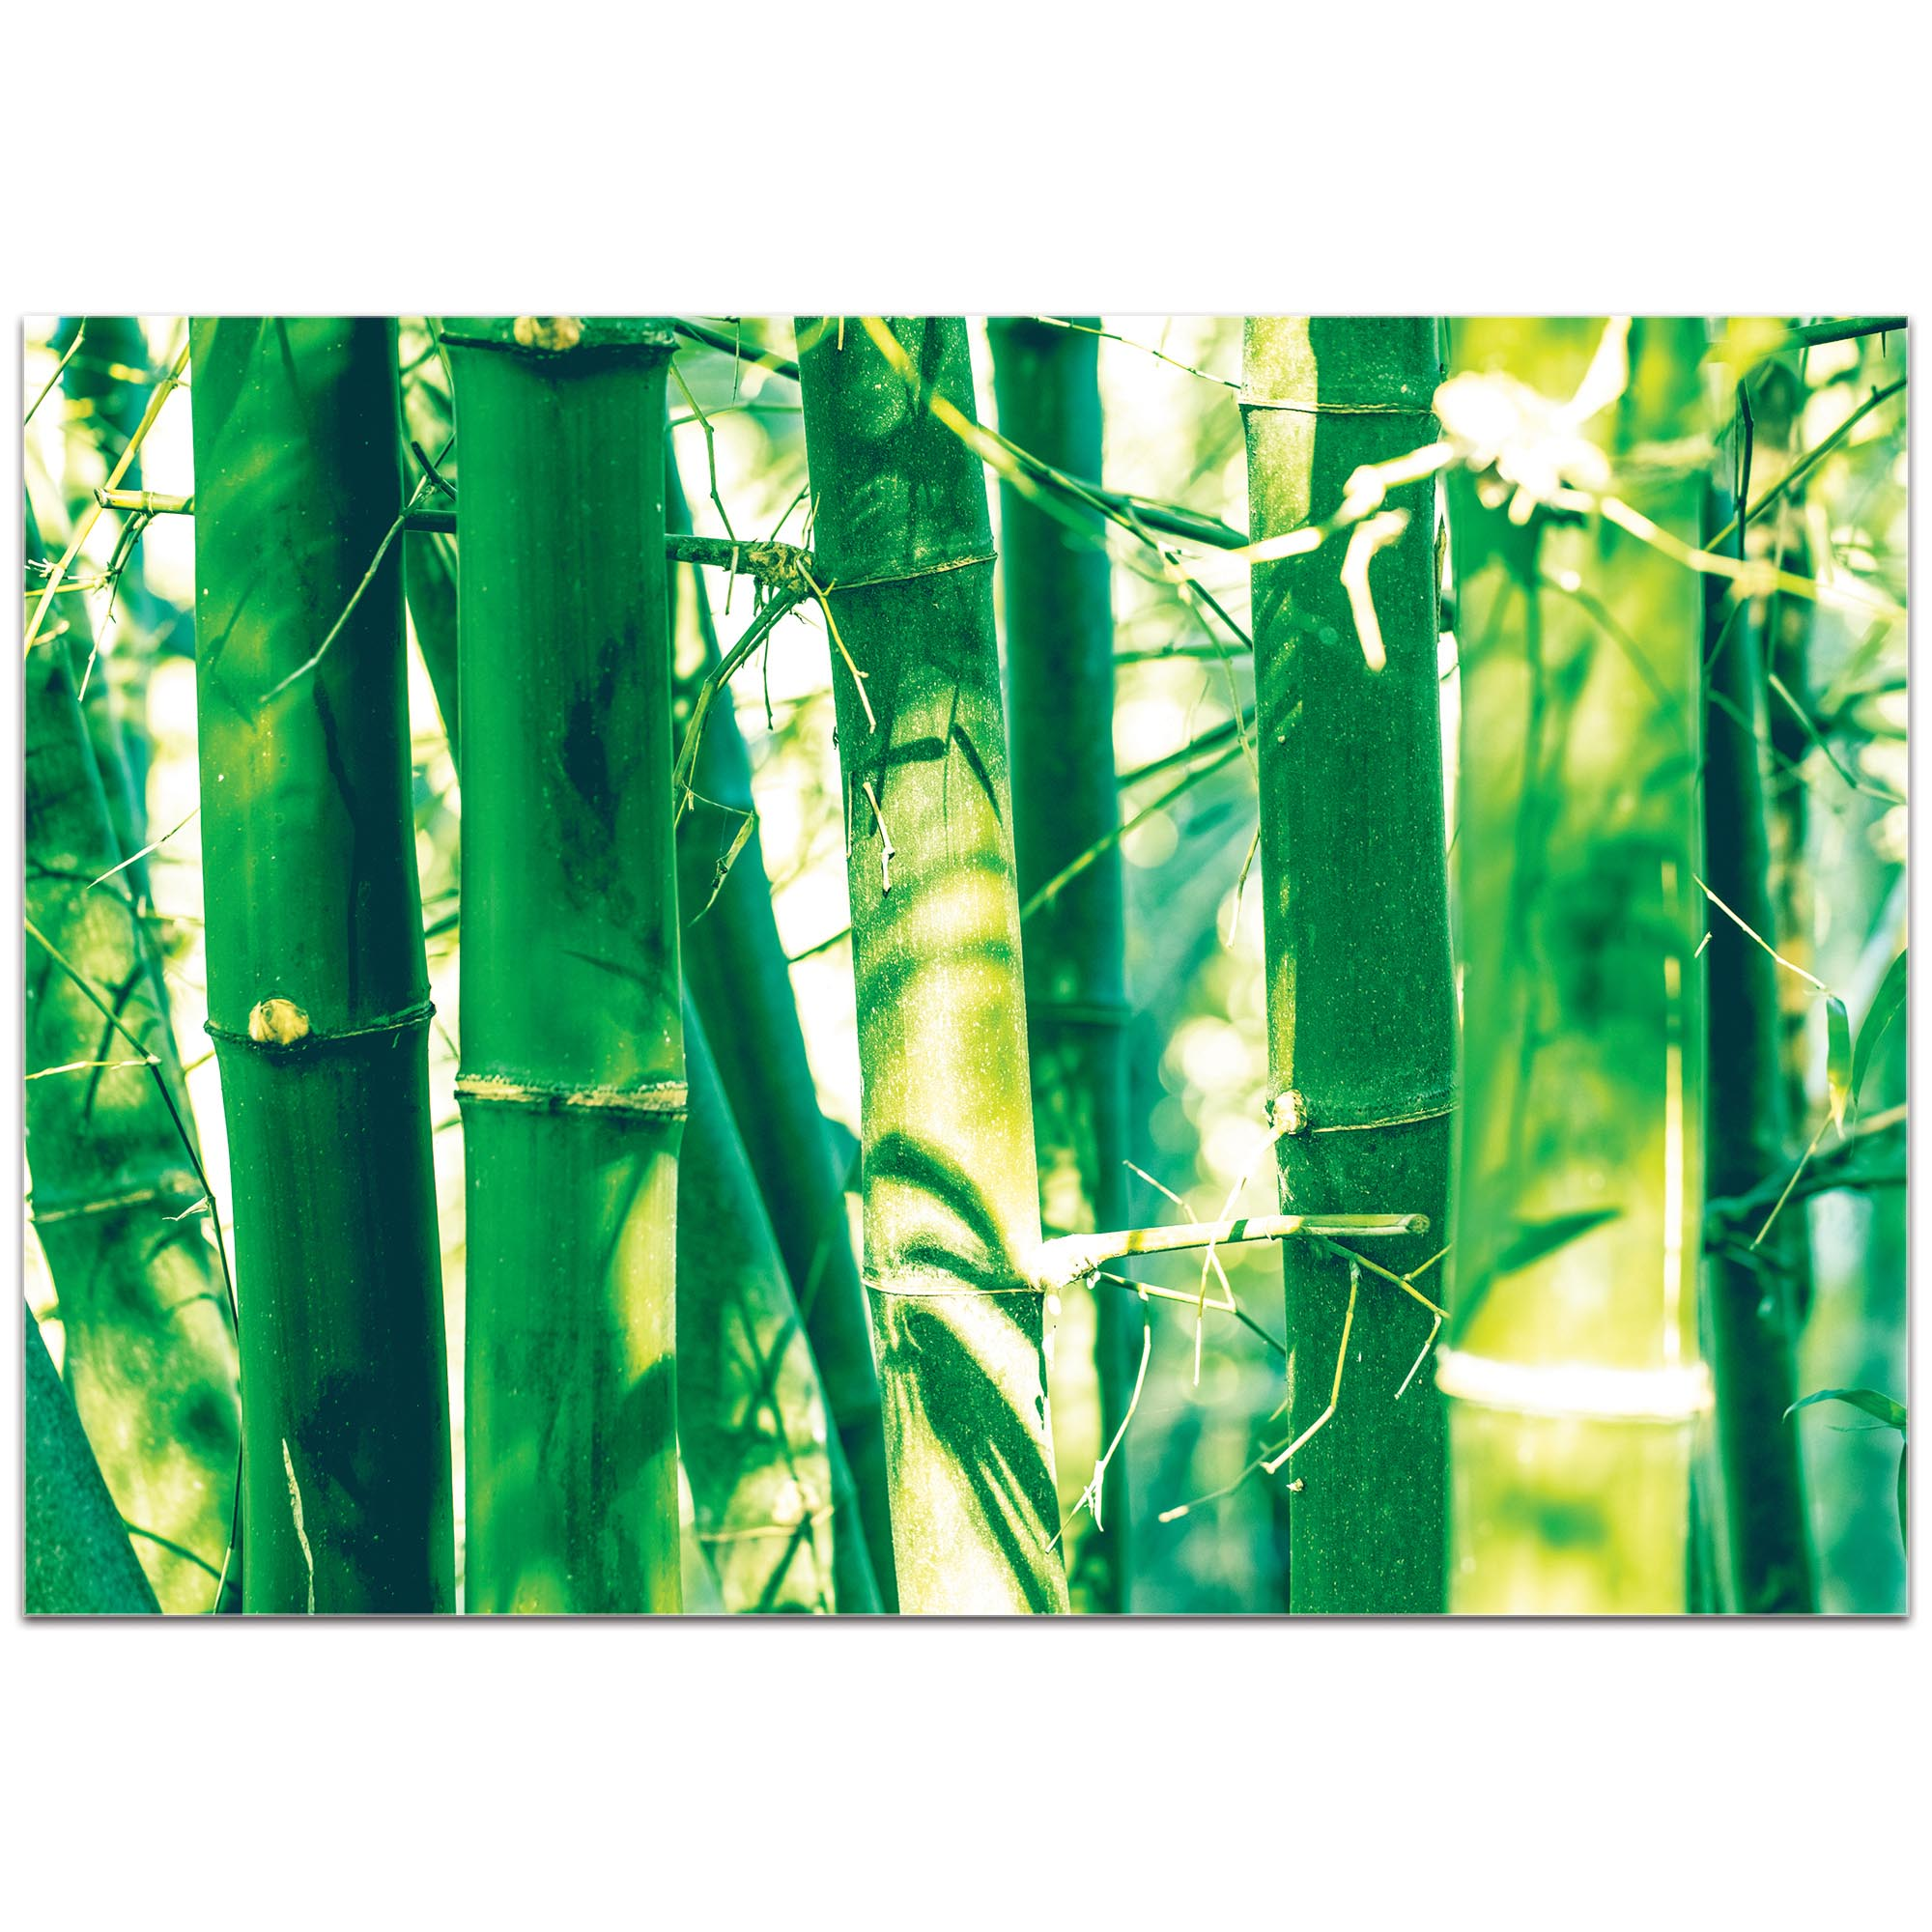 Asian Wall Art 'Bamboo Forest' - Bamboo Decor on Metal or Plexiglass - Image 2